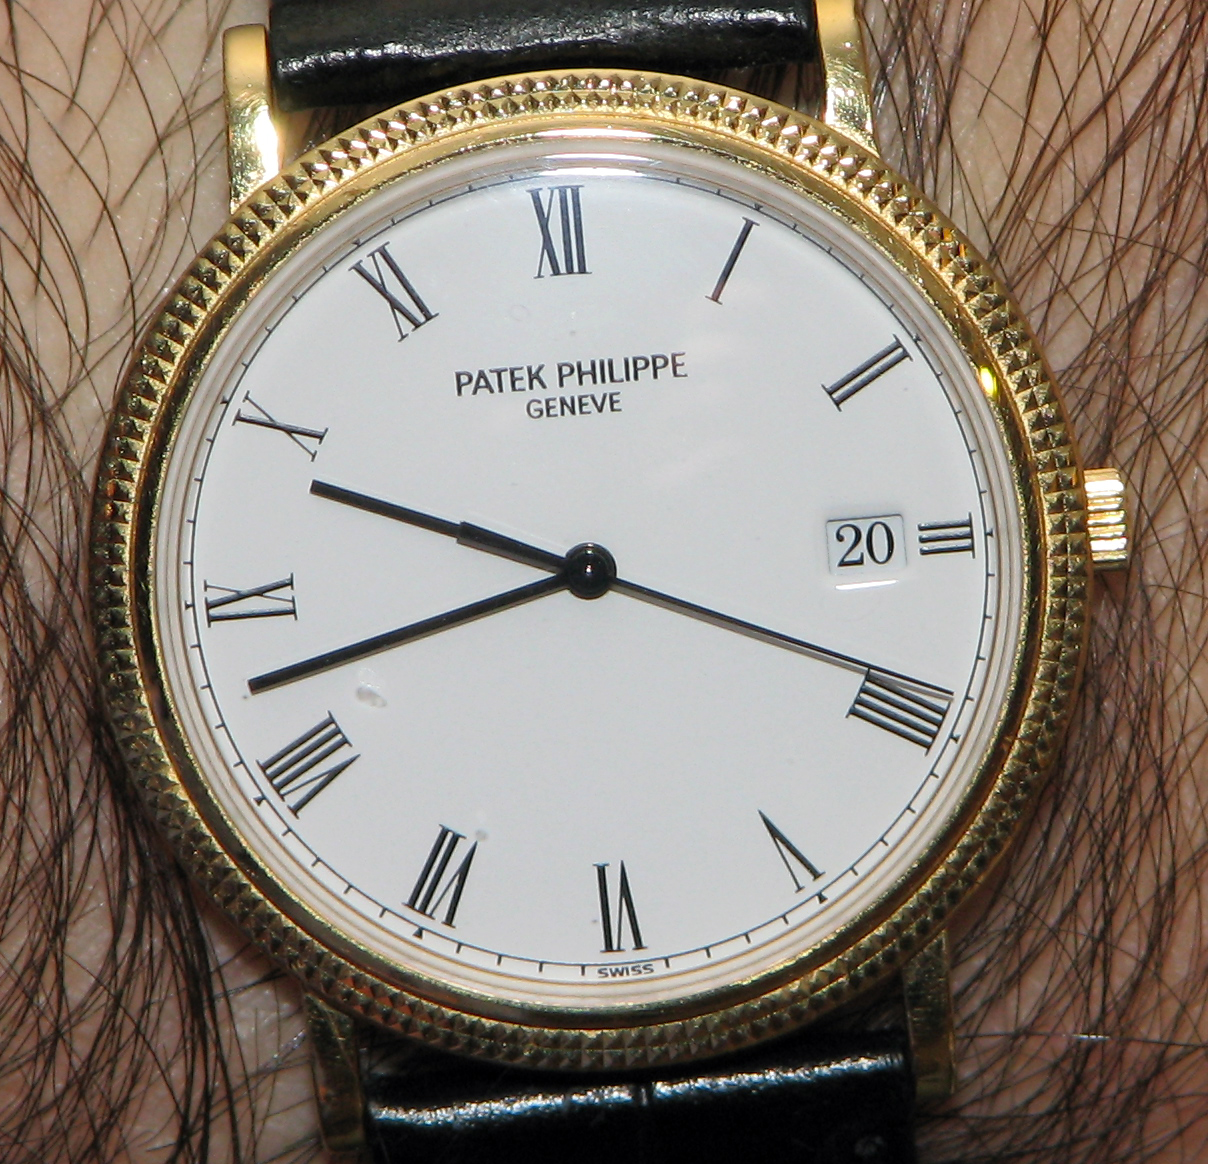 The Hour Glass would offer Patek Philippe Calatrava at a Reasonable Price